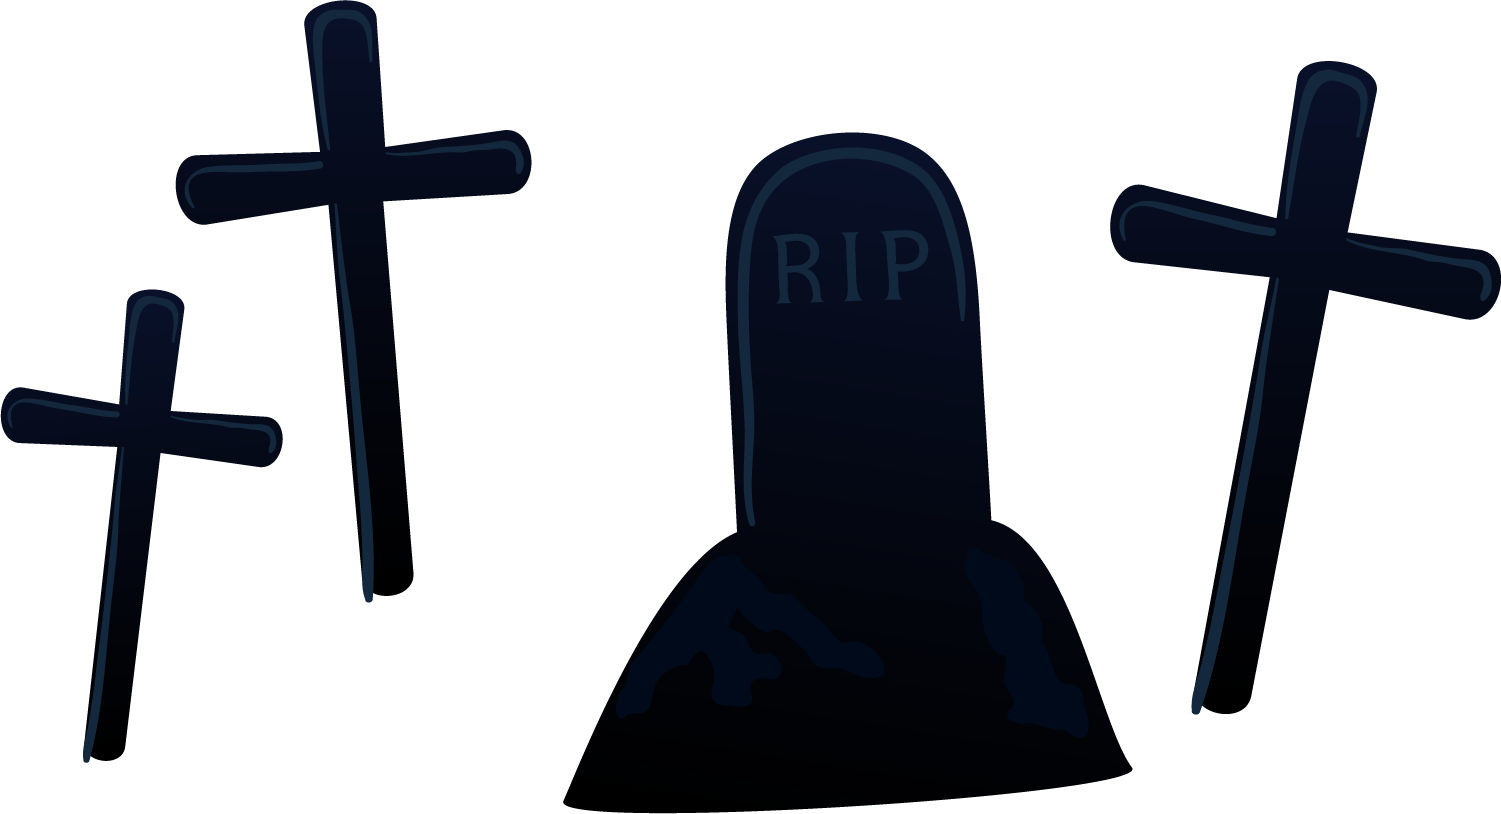 Cross with tomb clipart picture freeuse library Grave Cartoon Clip art - Grave decoration pattern 1501*814 ... picture freeuse library